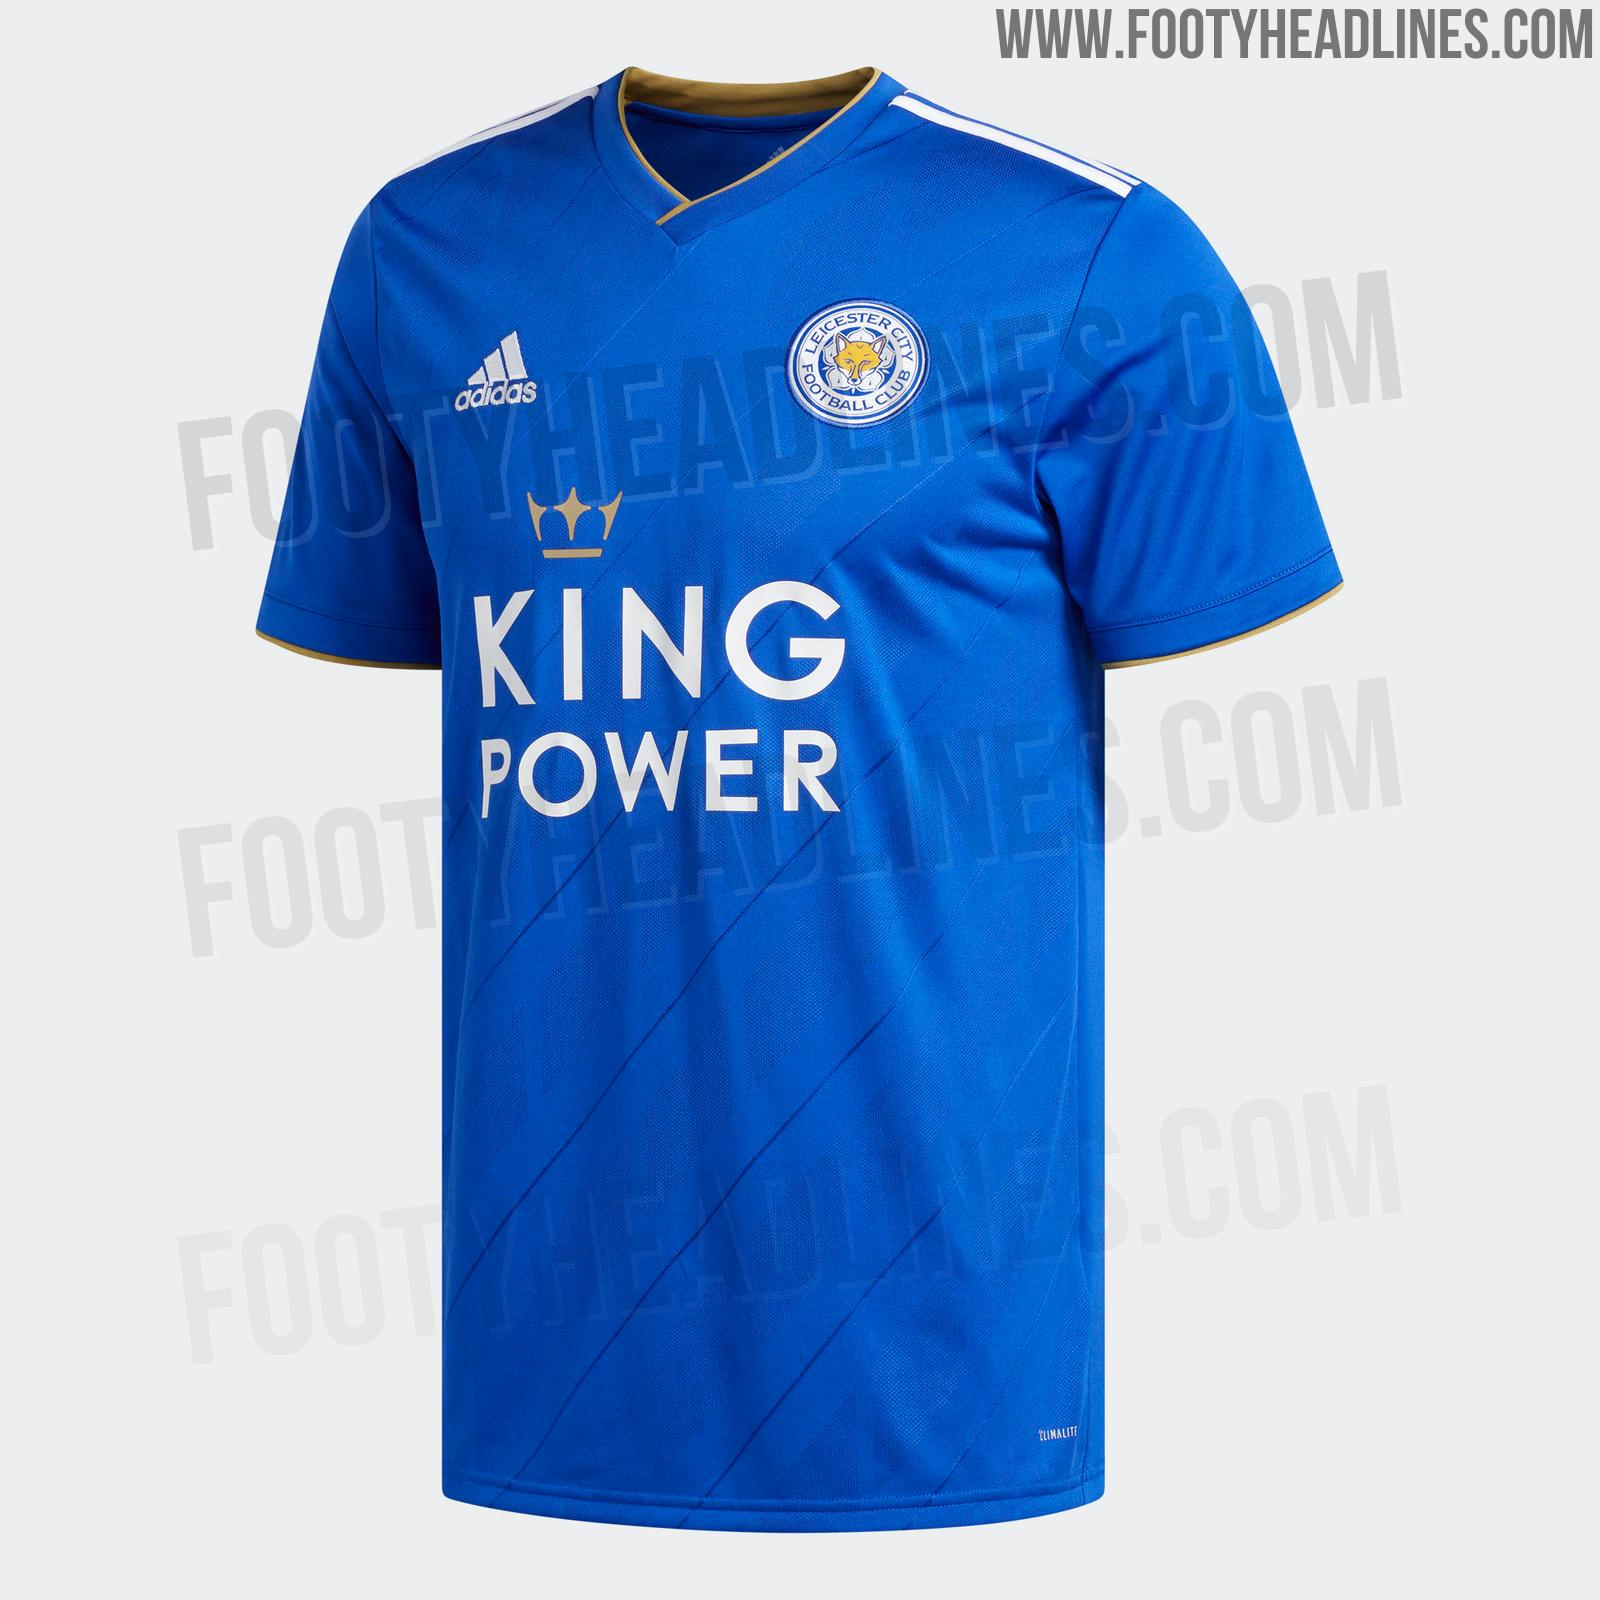 leicester-18-19-home-kit-2.jpg